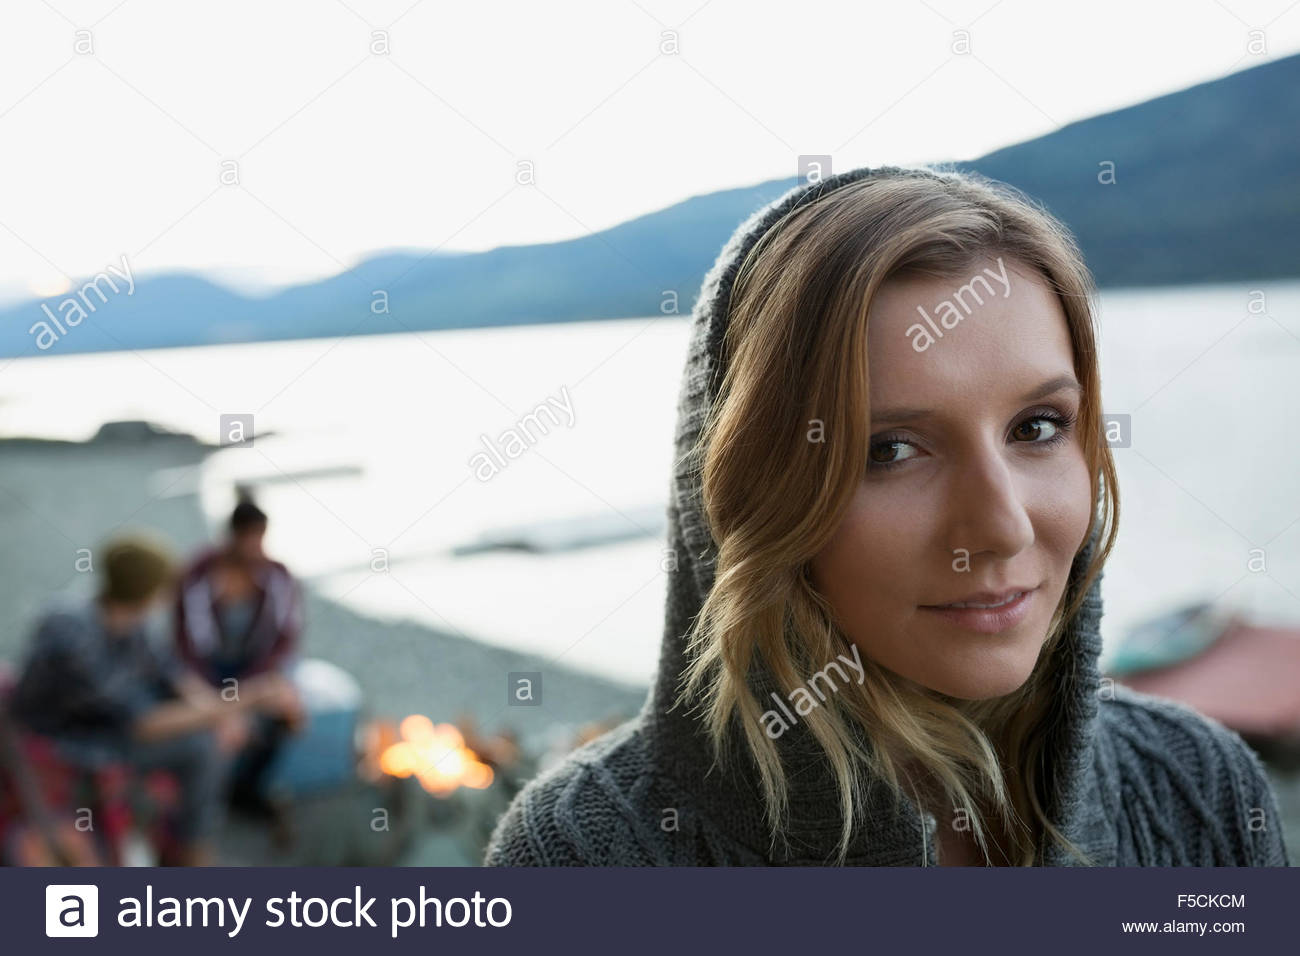 Close up portrait young woman in hoody lakeside - Stock Image